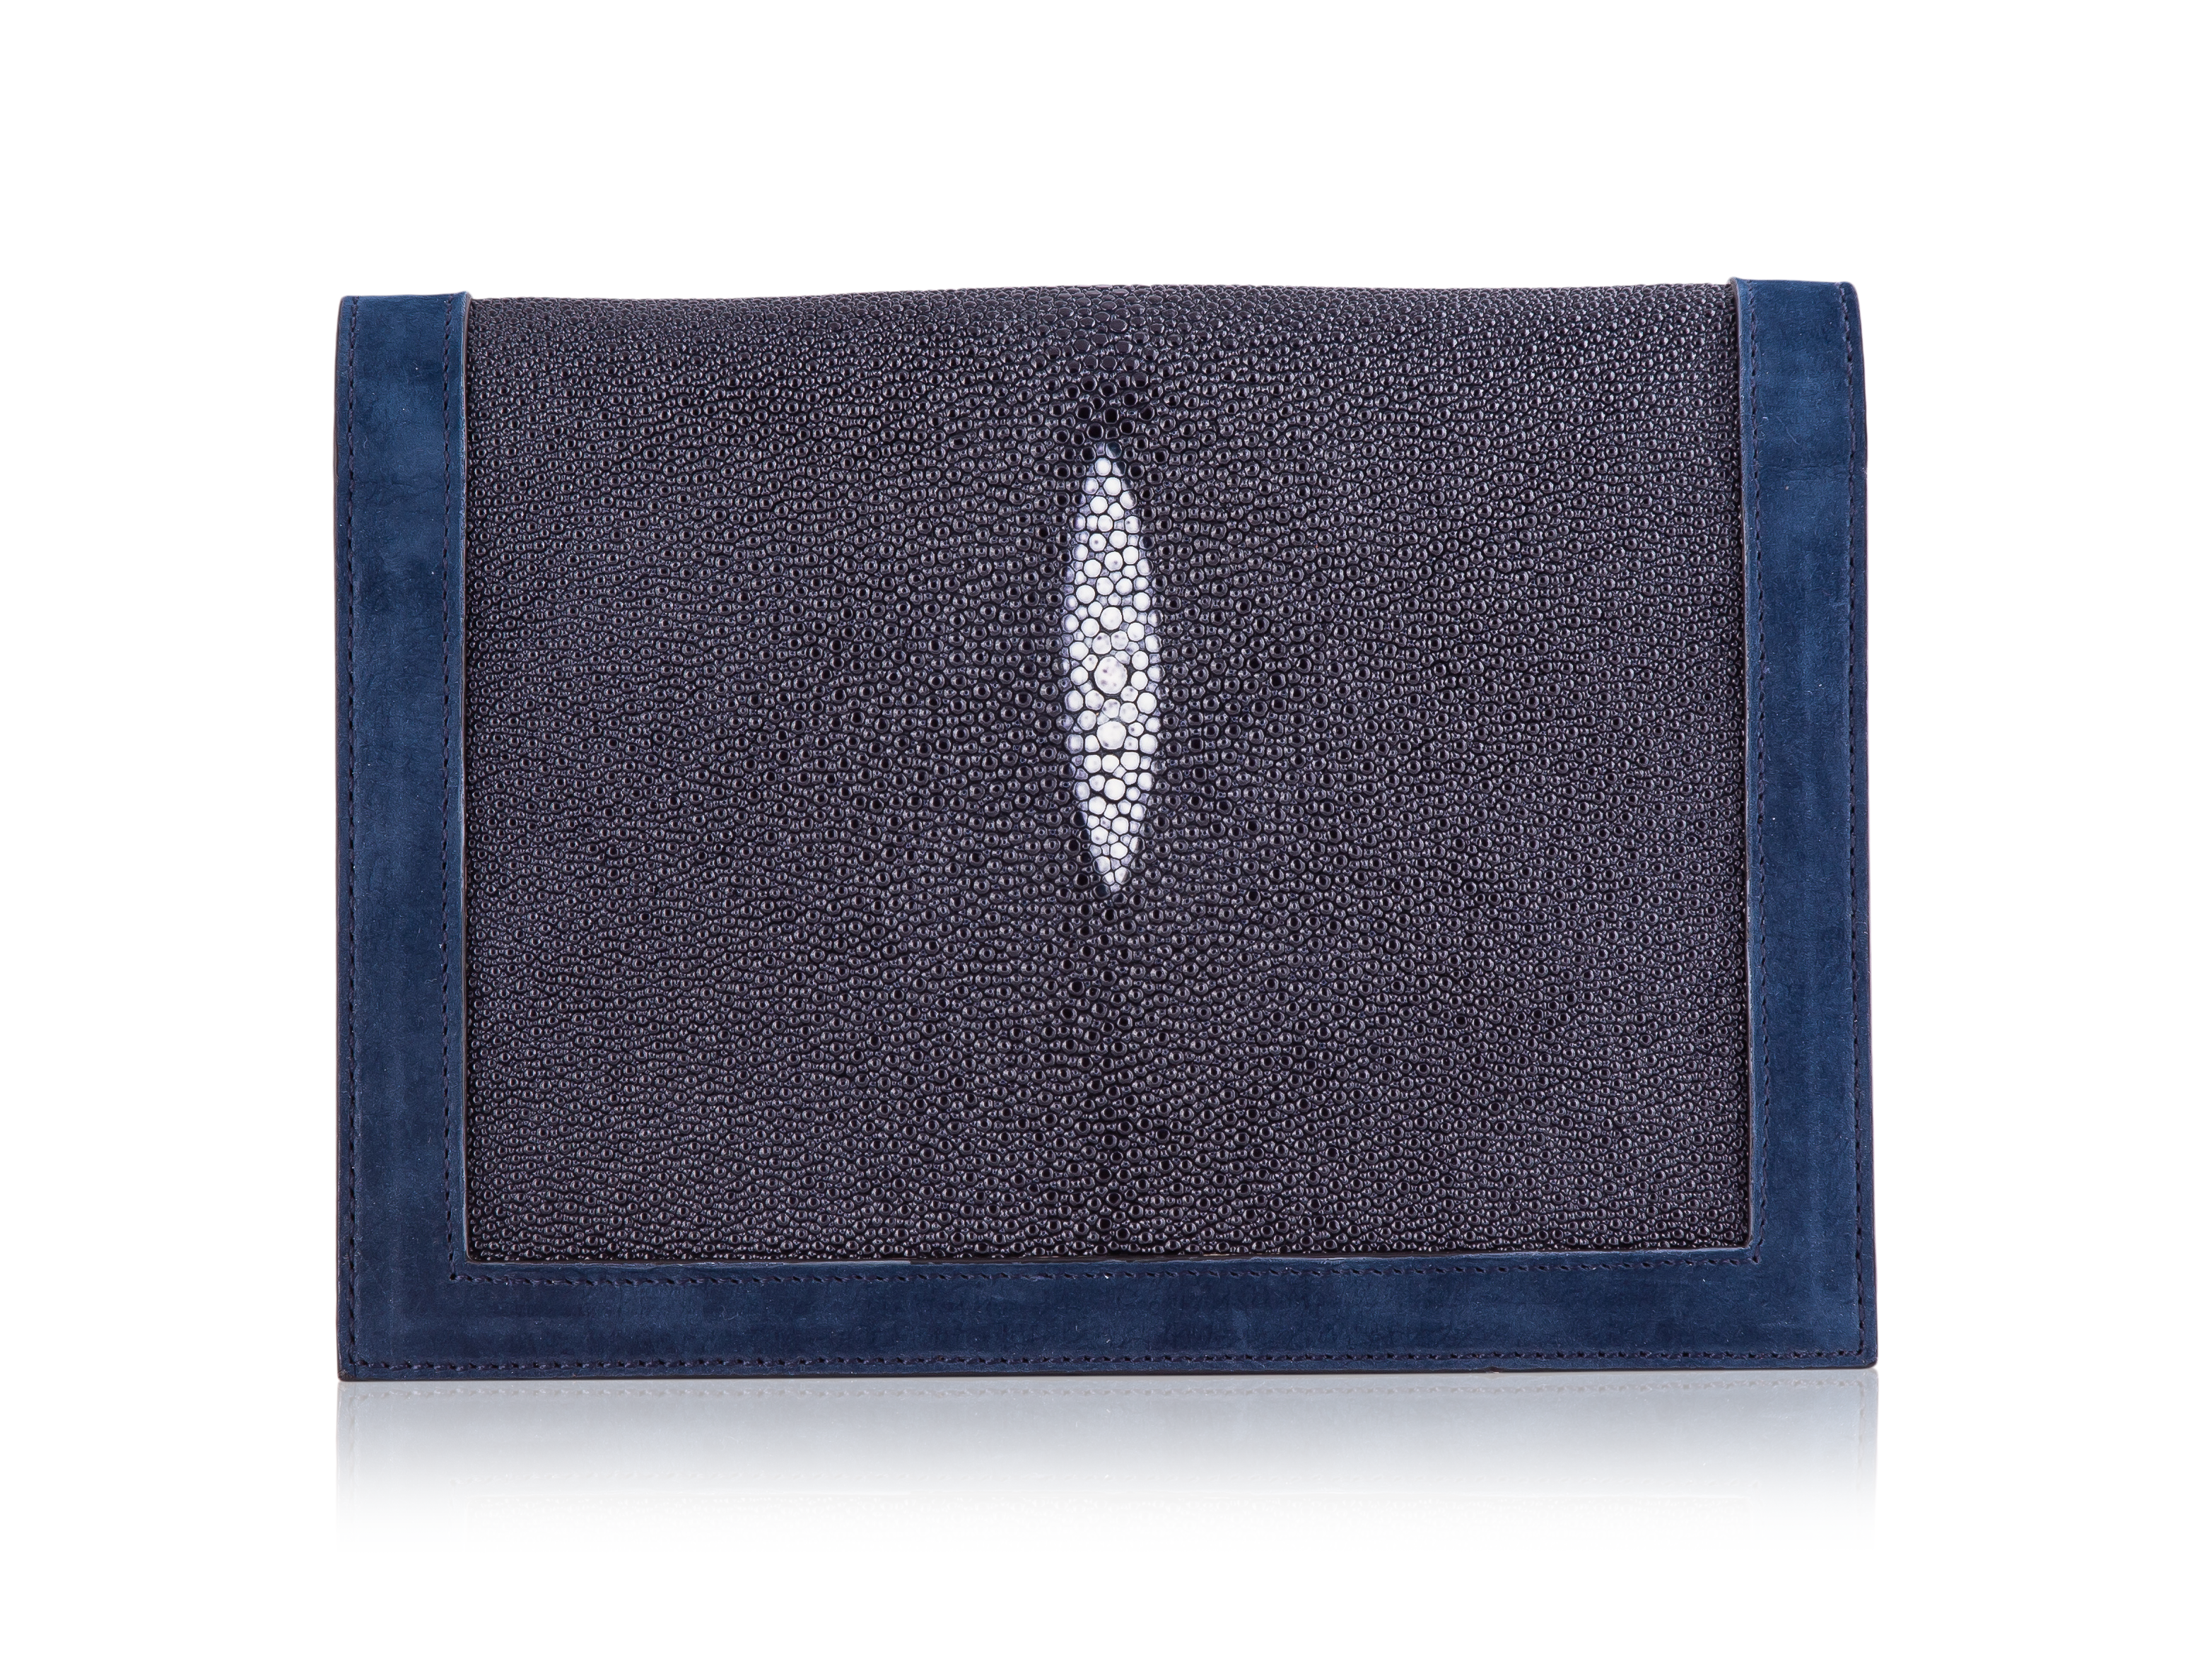 Envelope Clutch - Navy Stingray